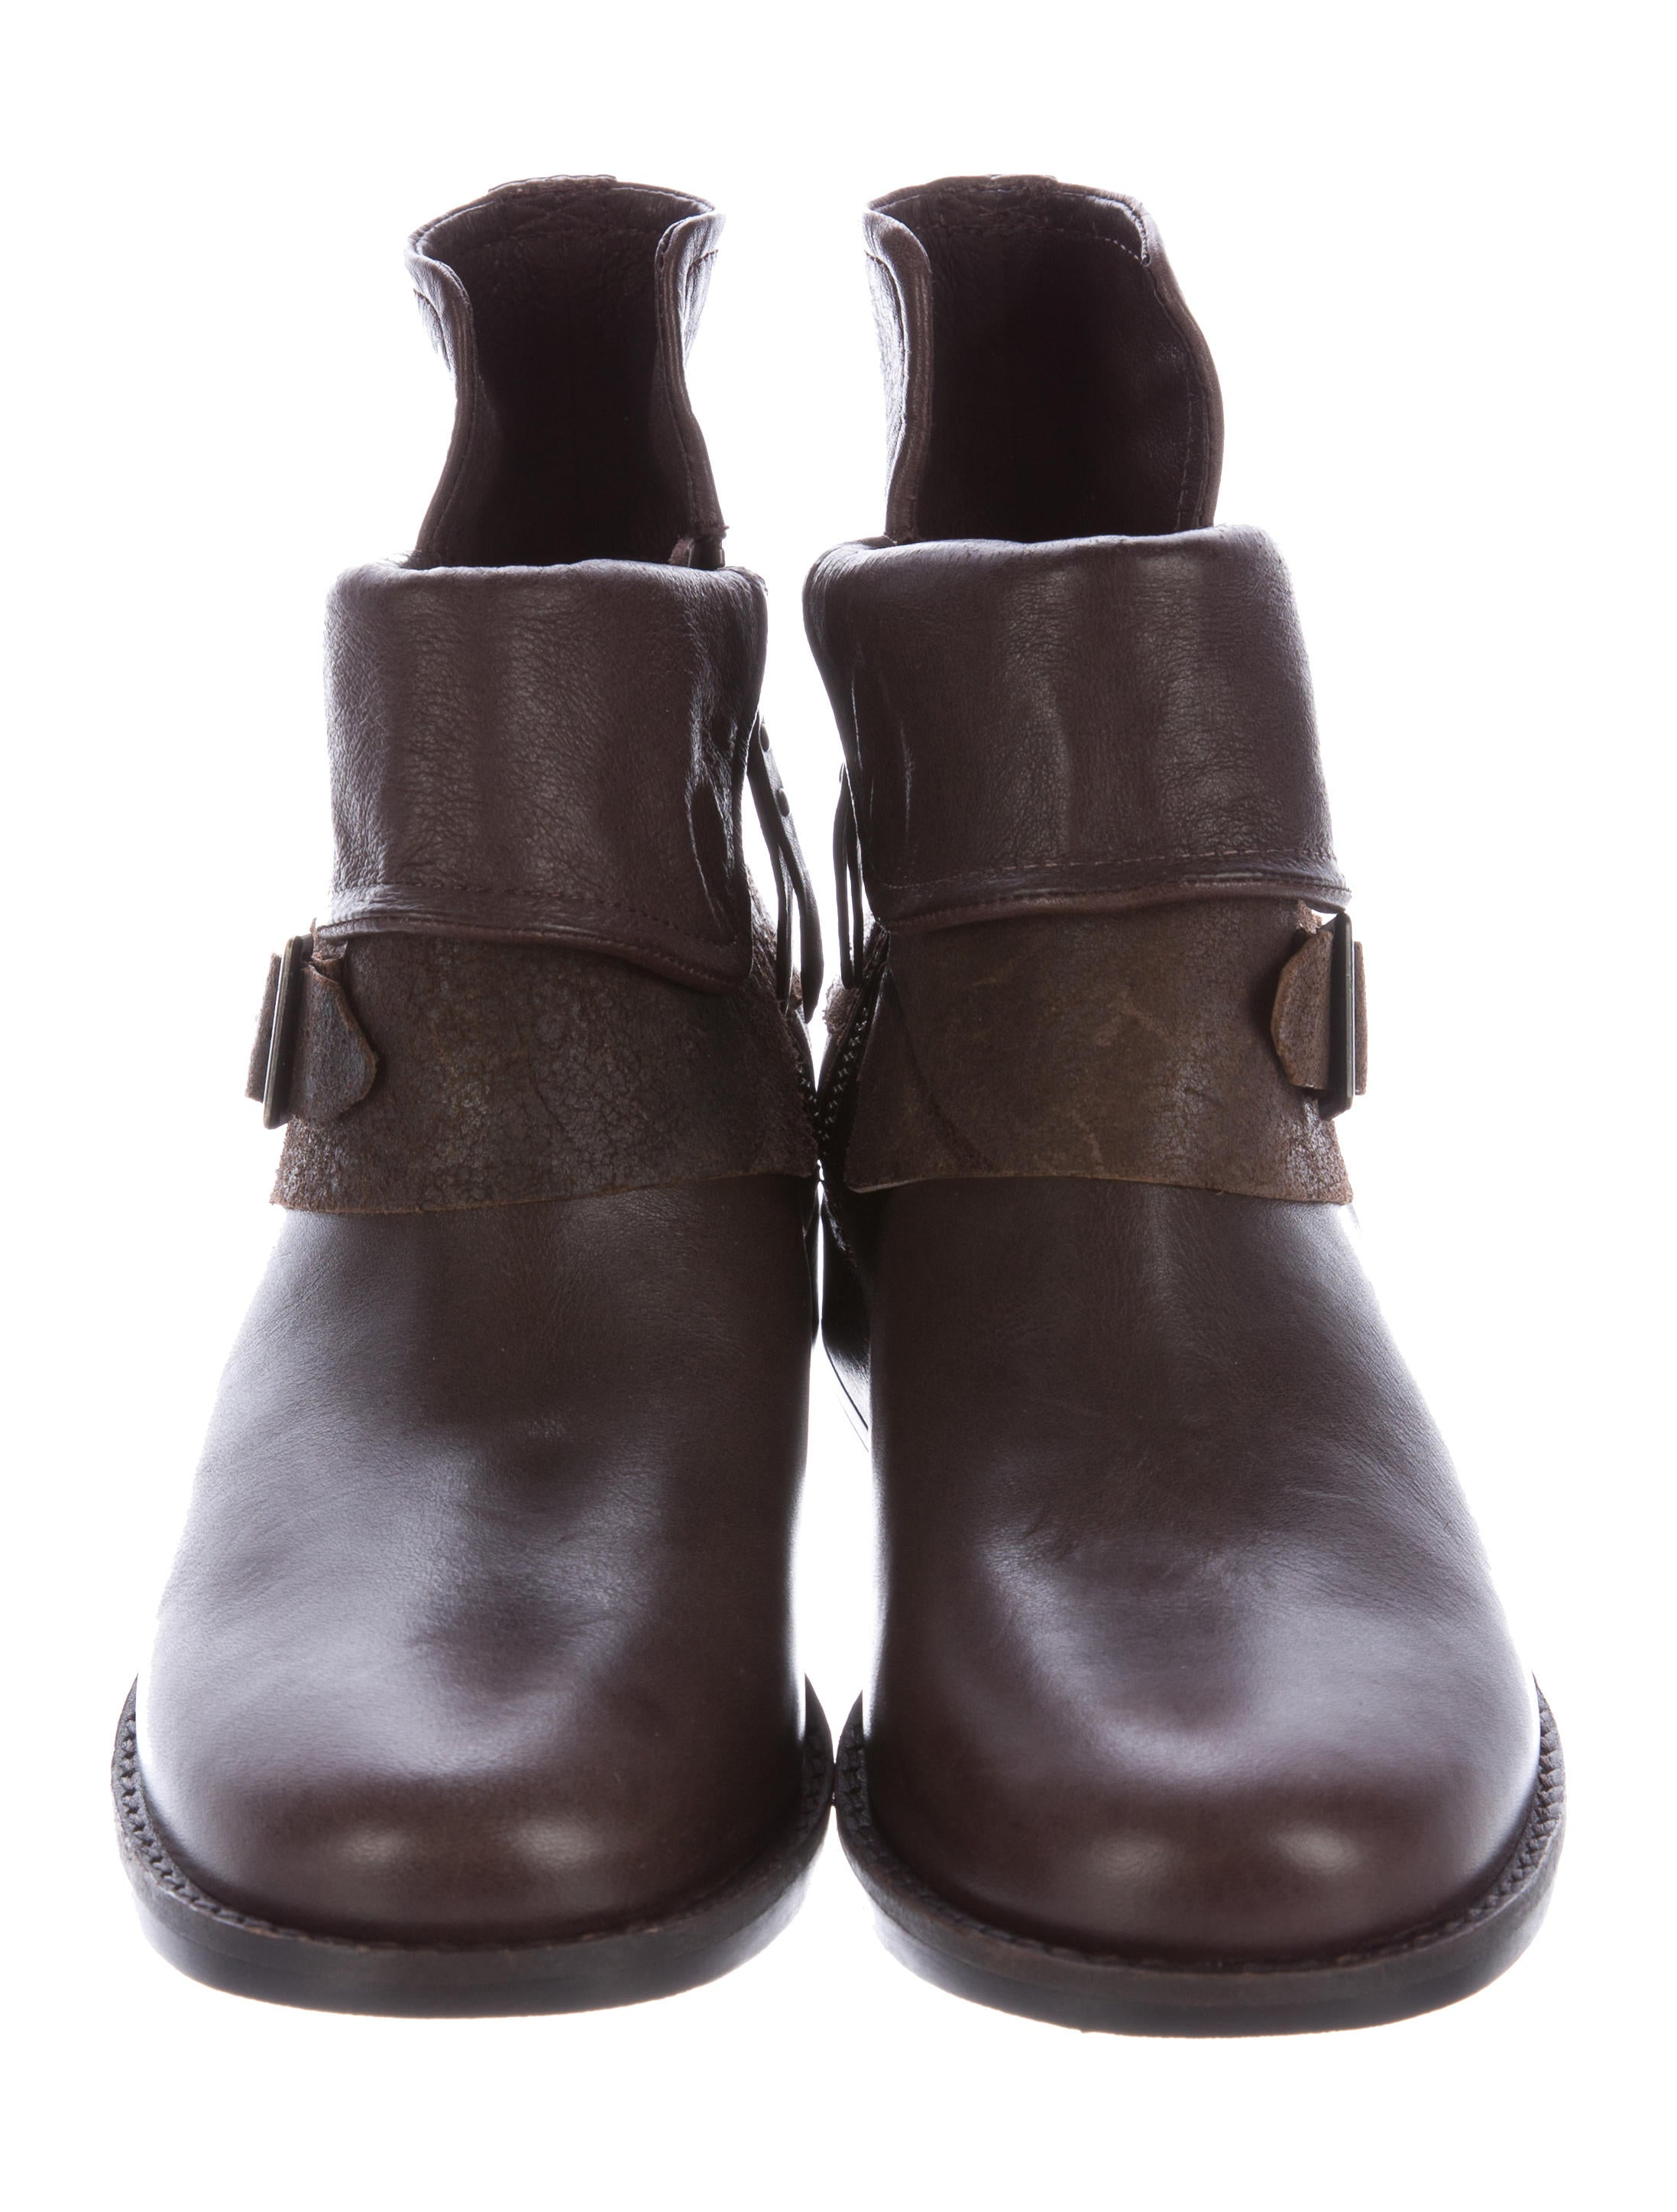 ugg australia leather ankle boots shoes wuugg22333